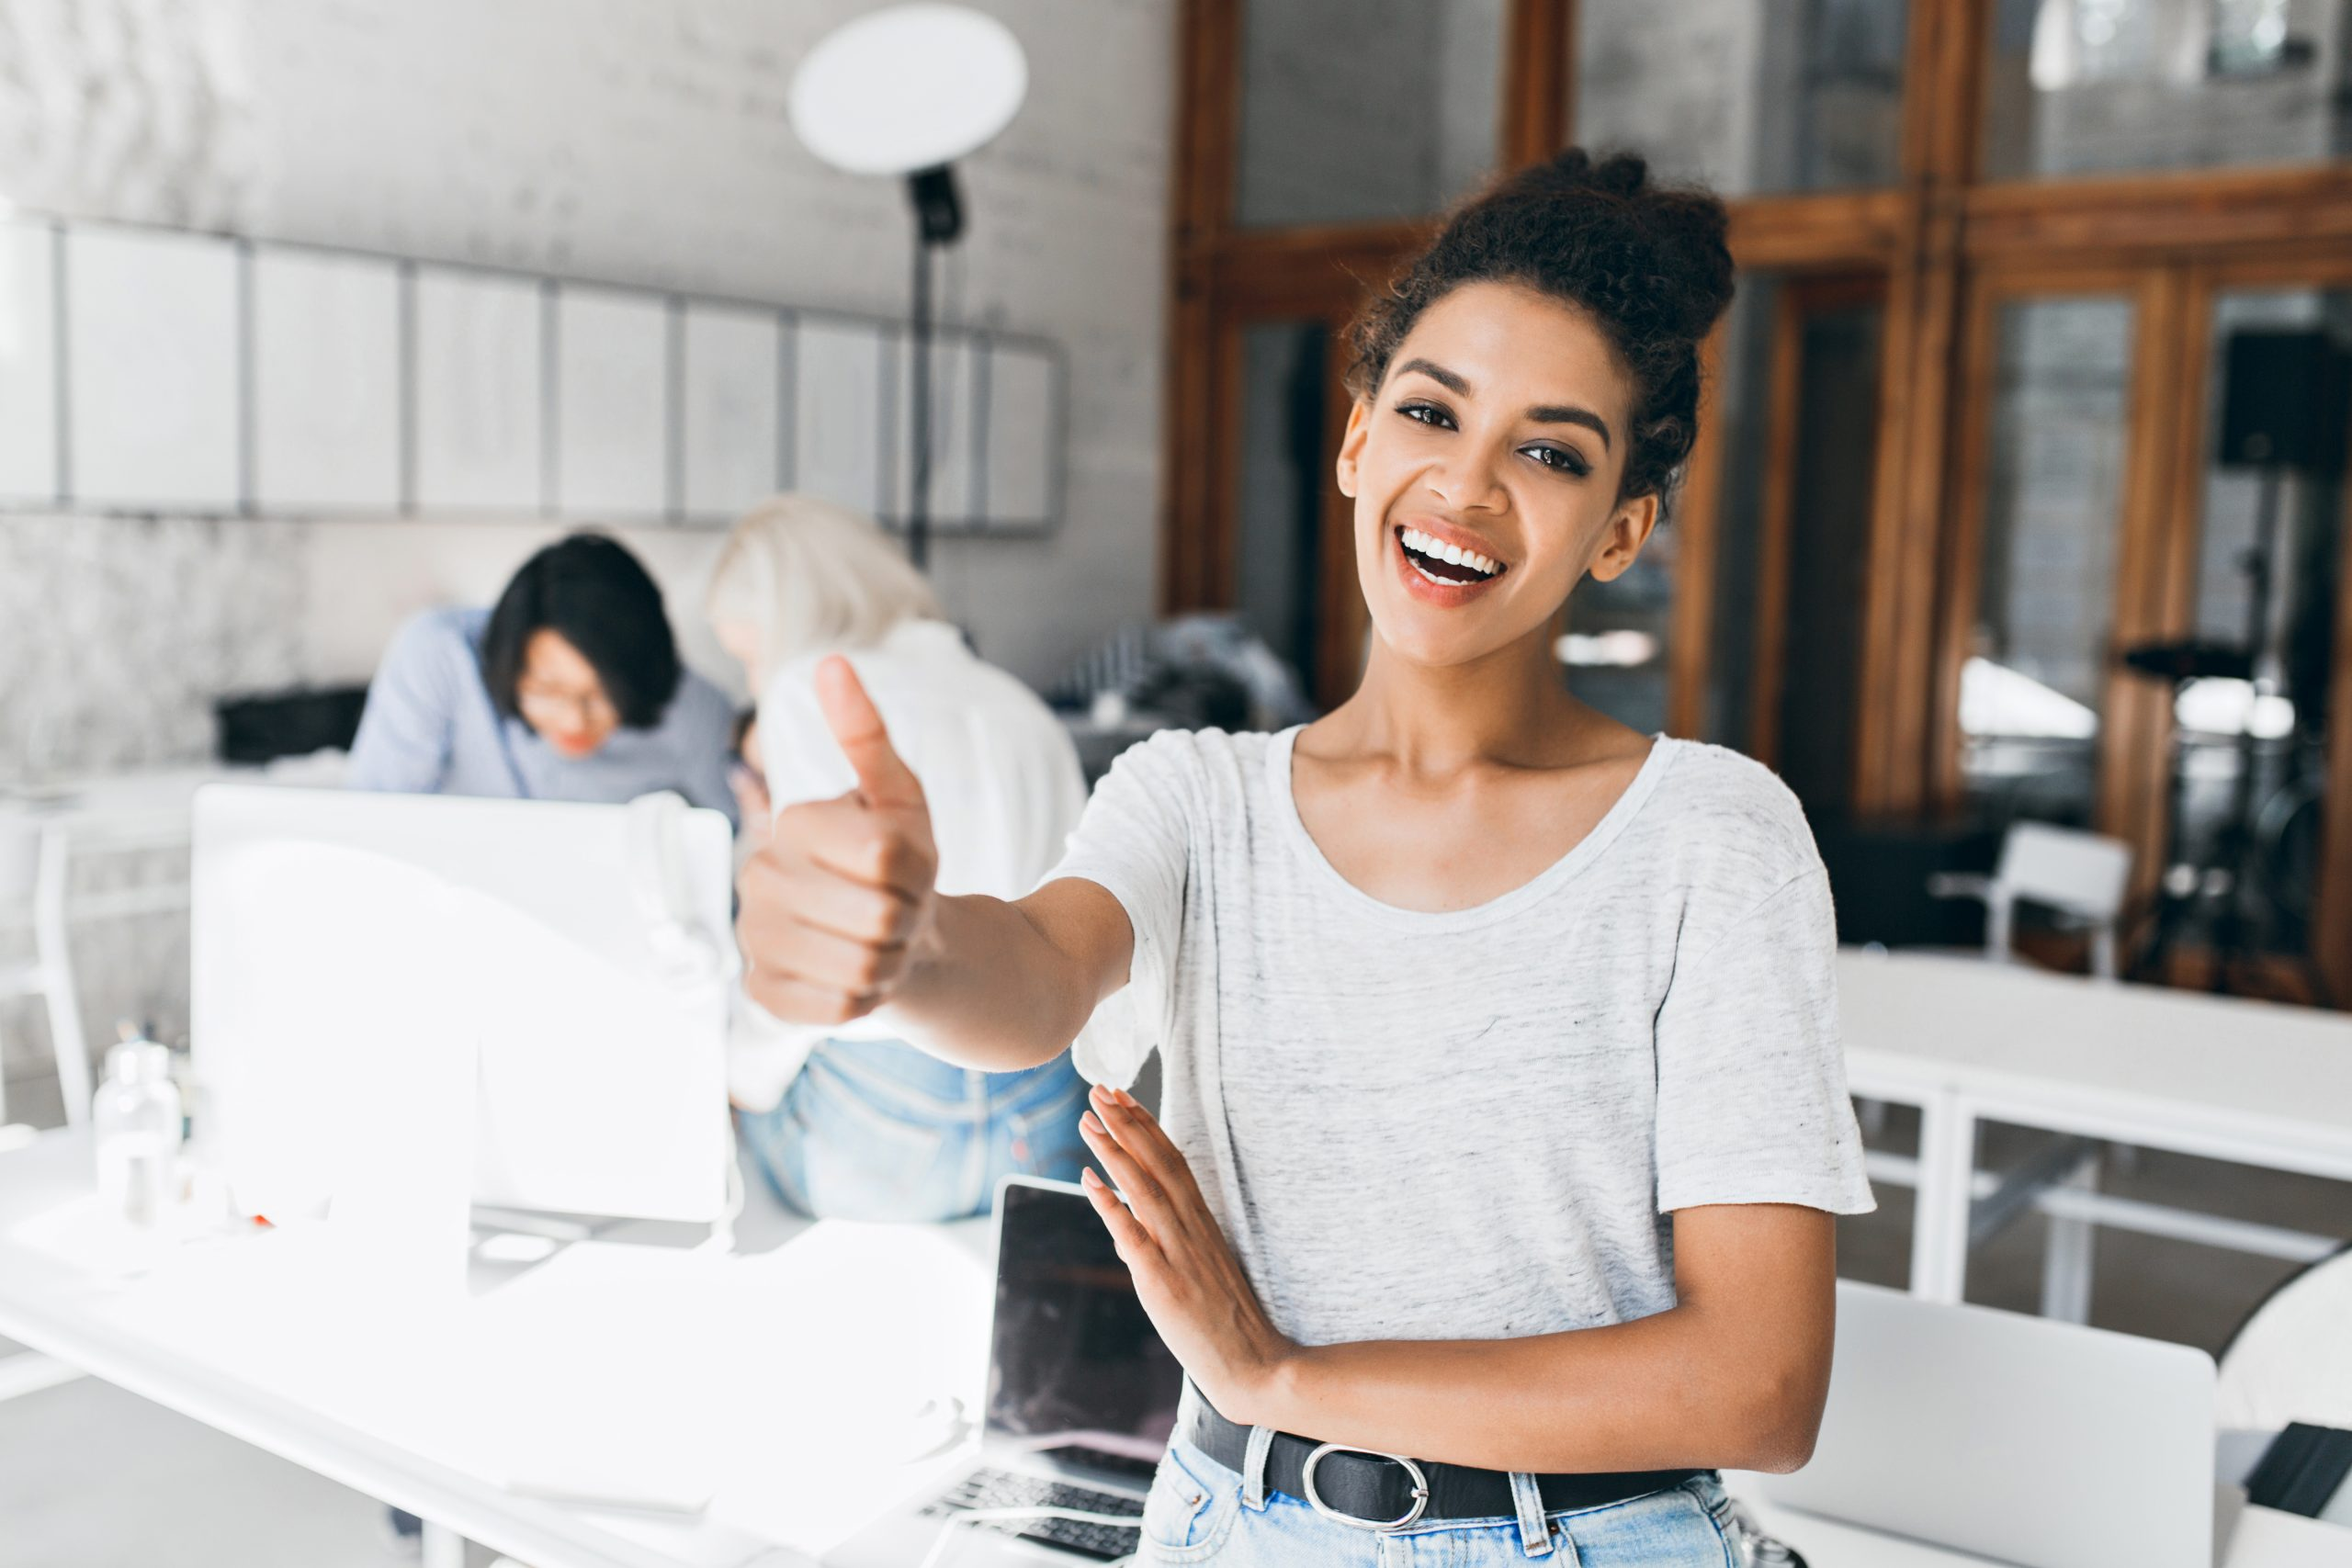 Joyful african female student with short hairstyle holding thumb up after passing exams. Portrait of happy black girl in gray t-shirt having fun in office while her colleagues working on project..